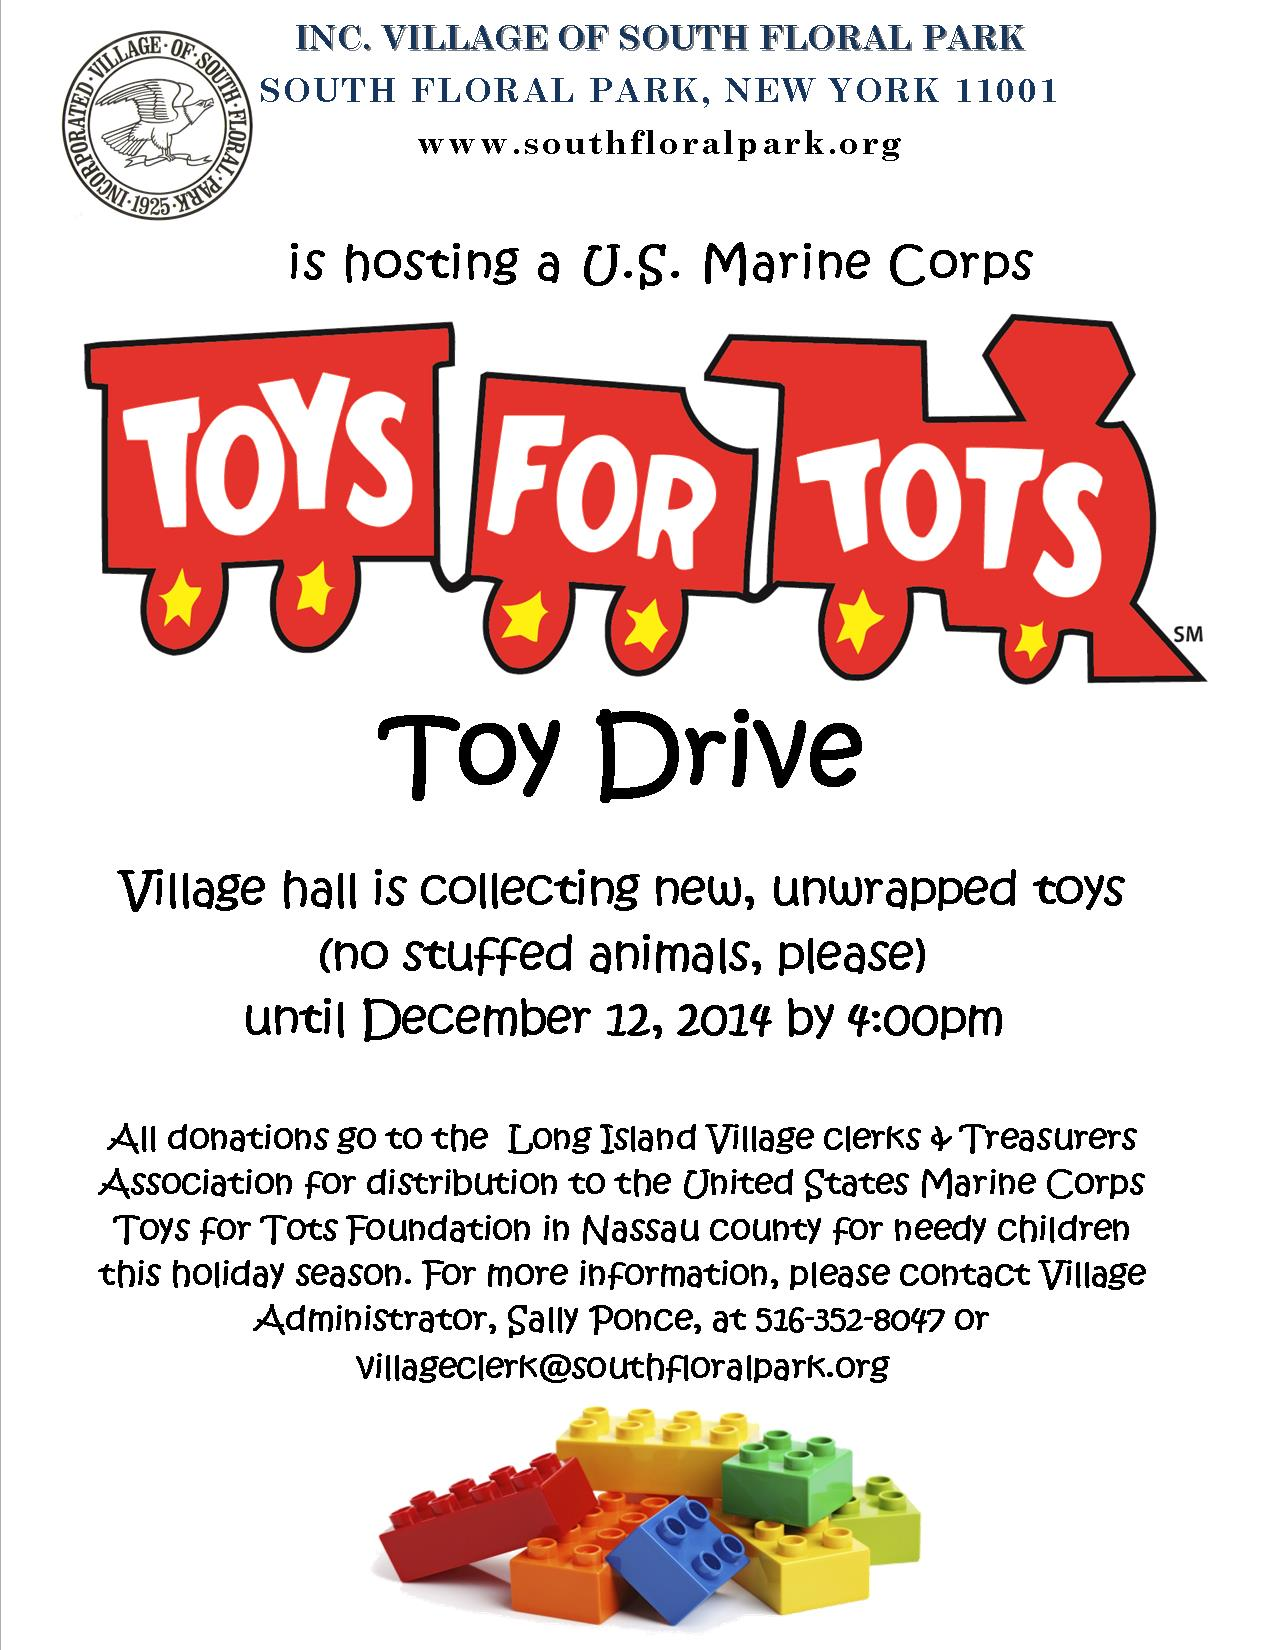 Toys For Tots Foundation Headquarters : Toys for tots corporate office phone number wow